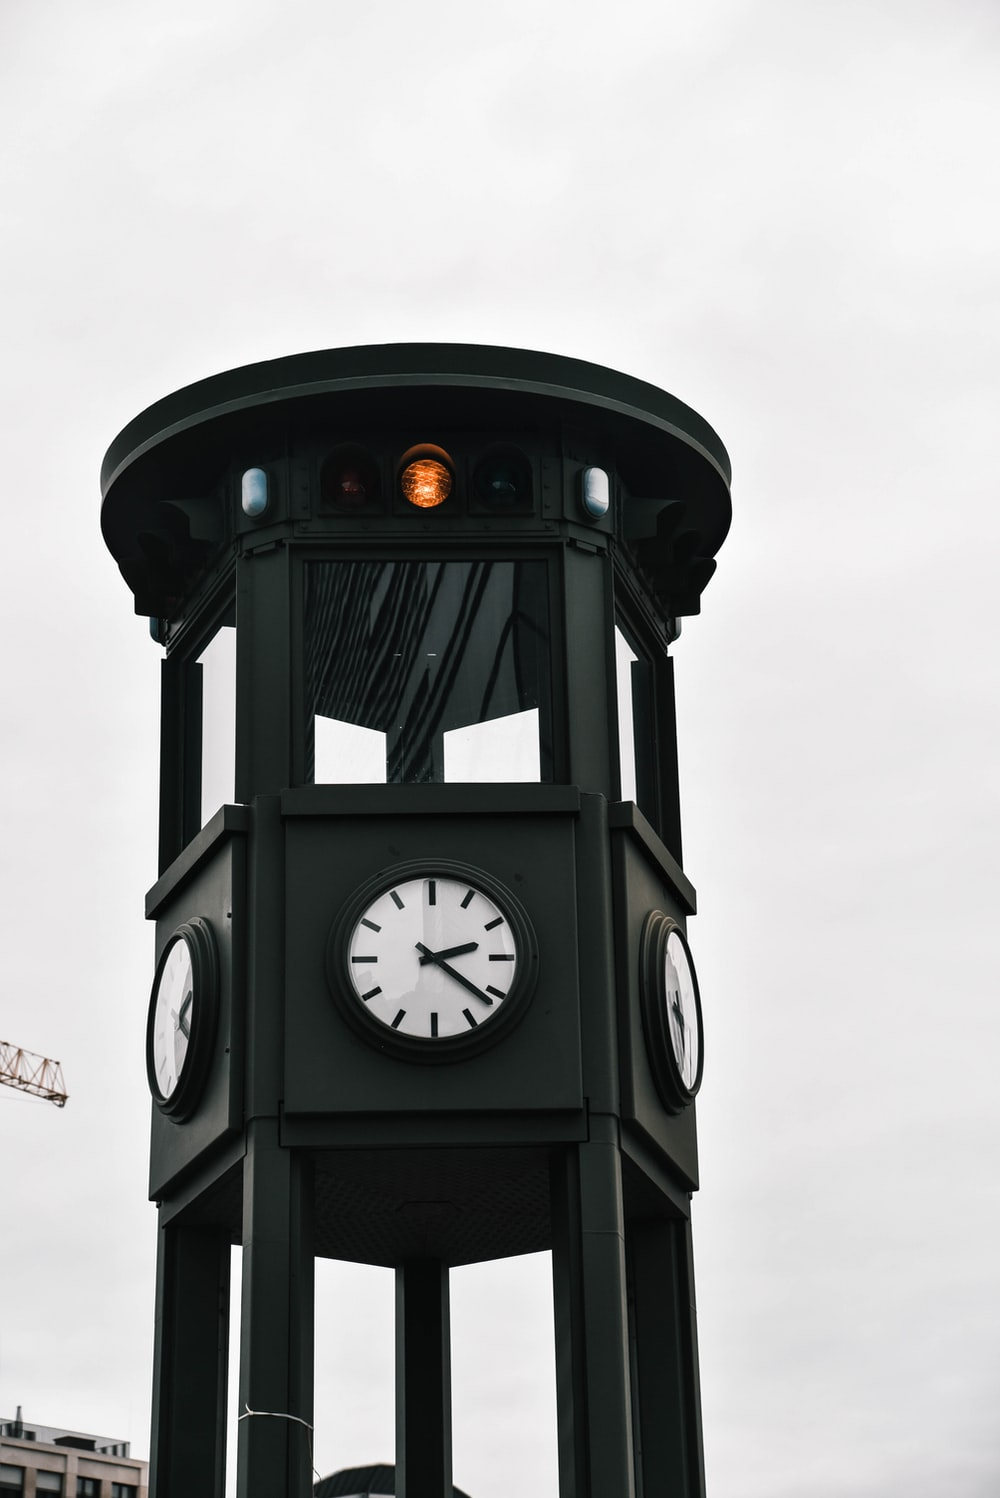 black and gray clock under clear blue sky